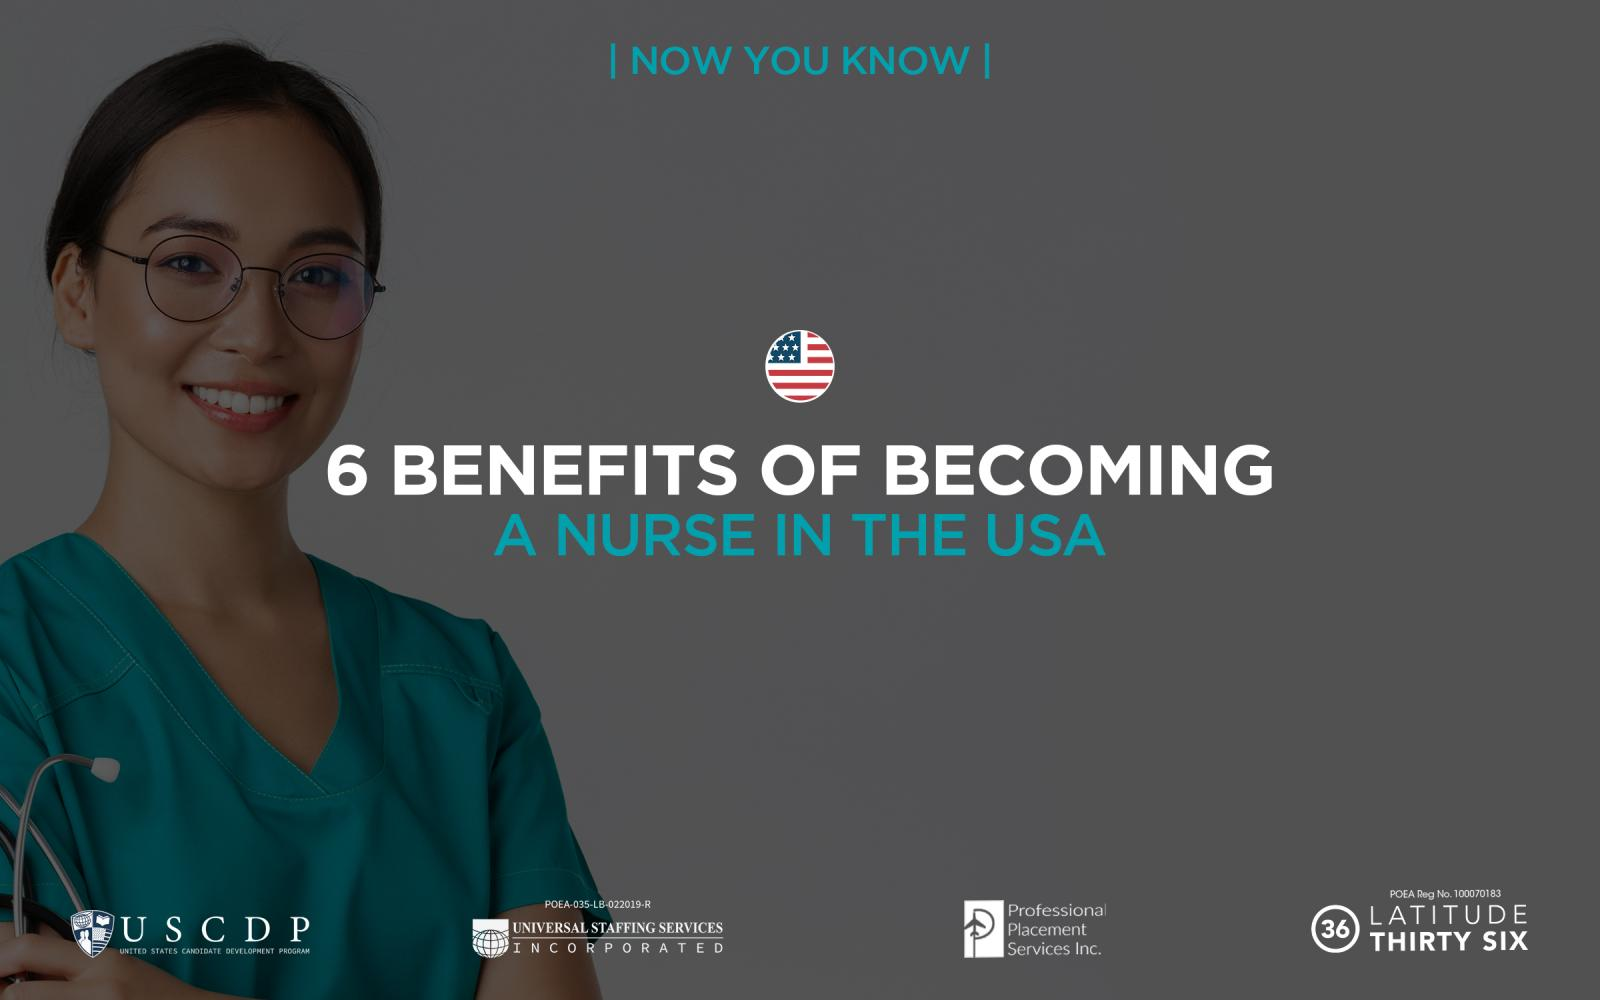 6 benefits of becoming a nurse in the USA